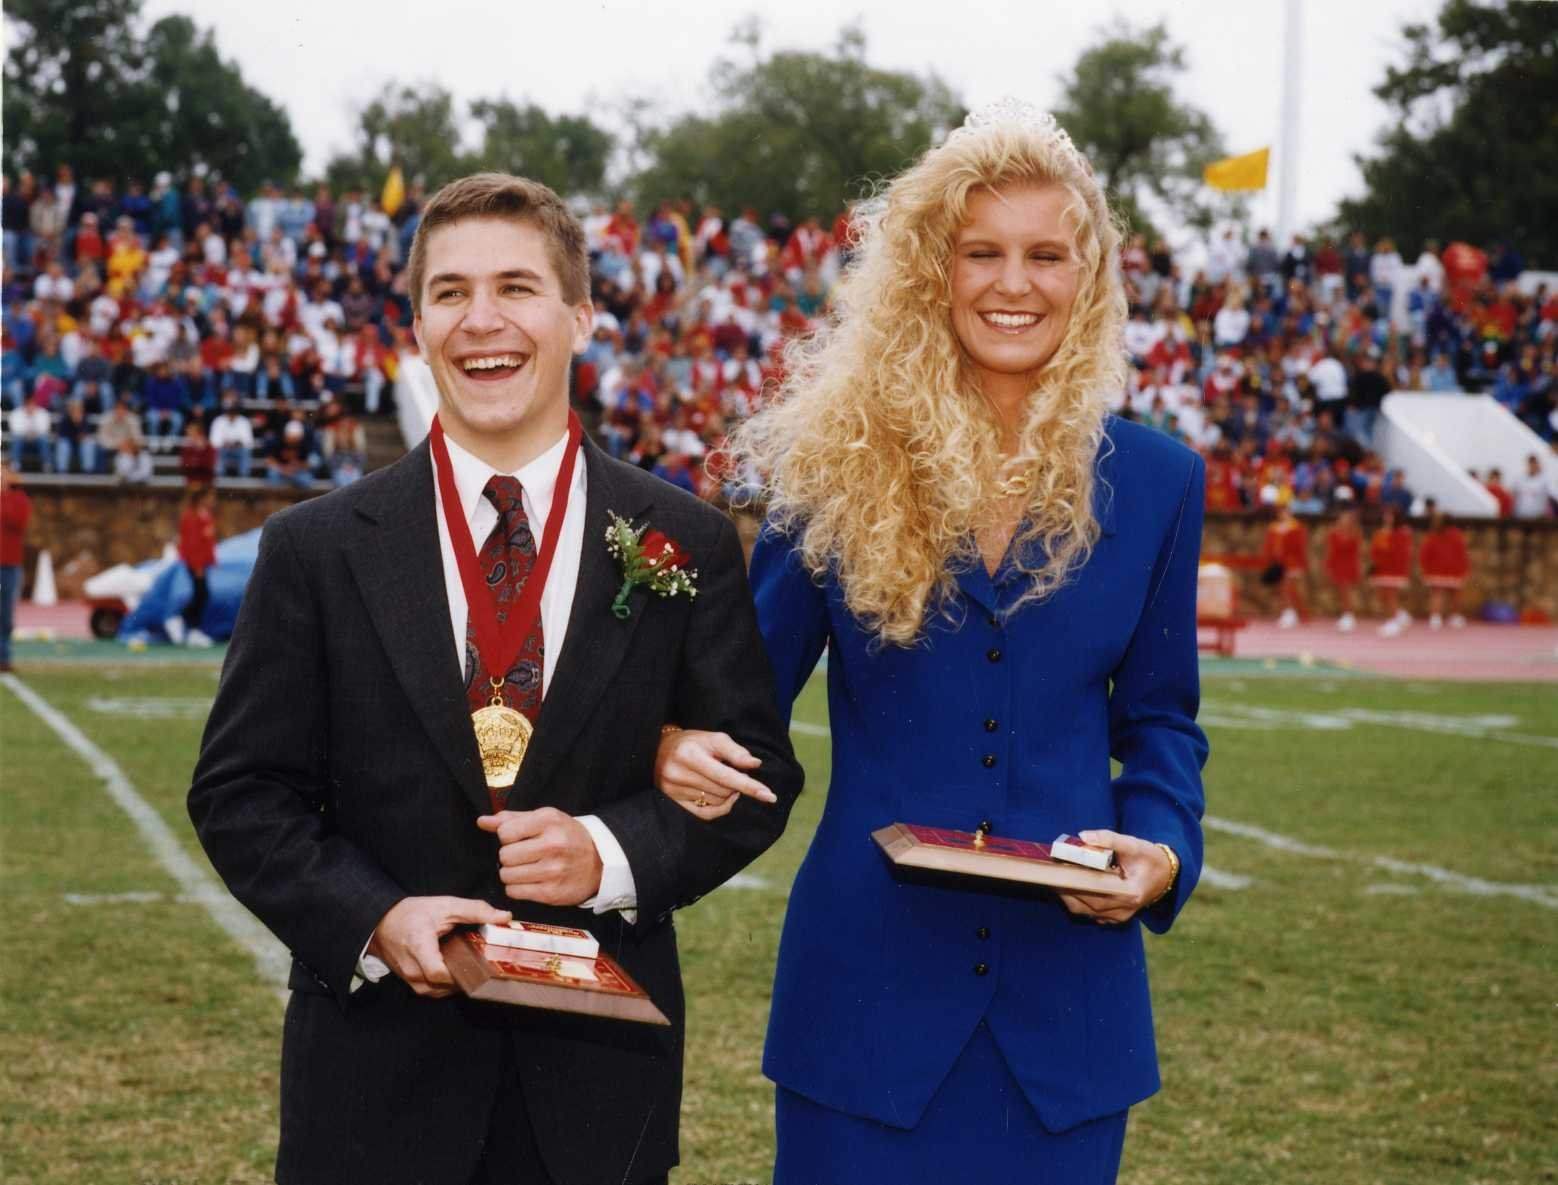 Mac Braun (with Queen Heather Gentry) was crowned the university's first Homecoming King in 1994. He will join other past kings and queens on campus this weekend for Homecoming 2013.